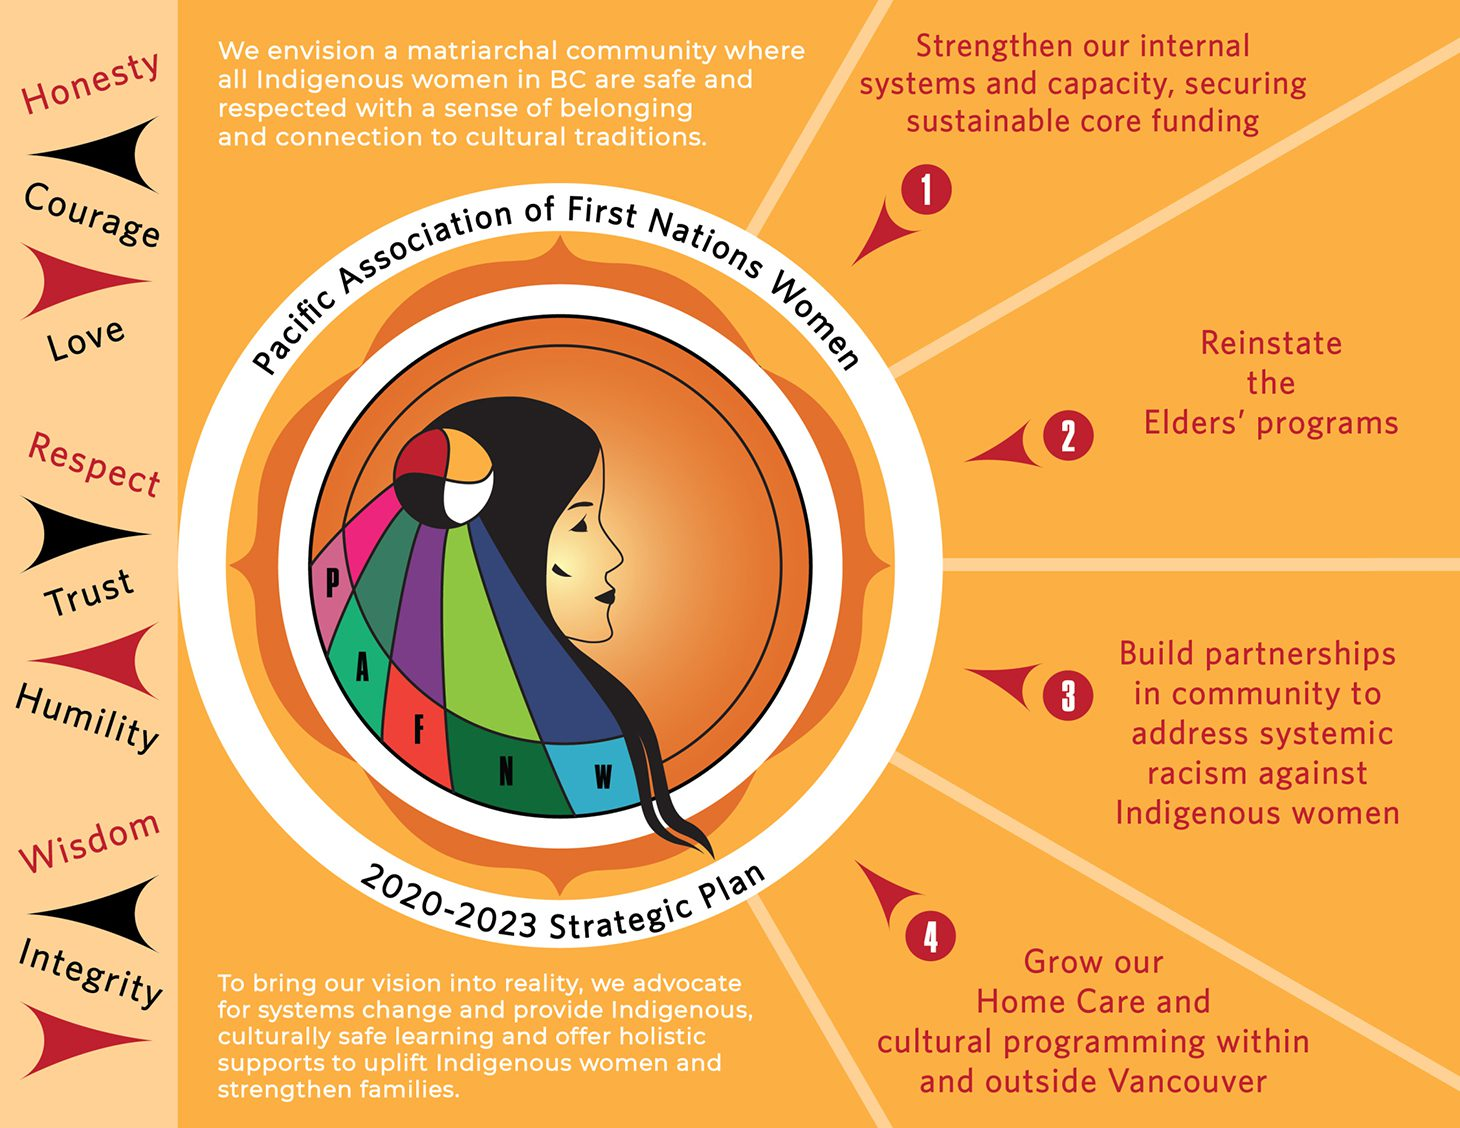 May 5th is National Day of Awareness for MMIWG2S+